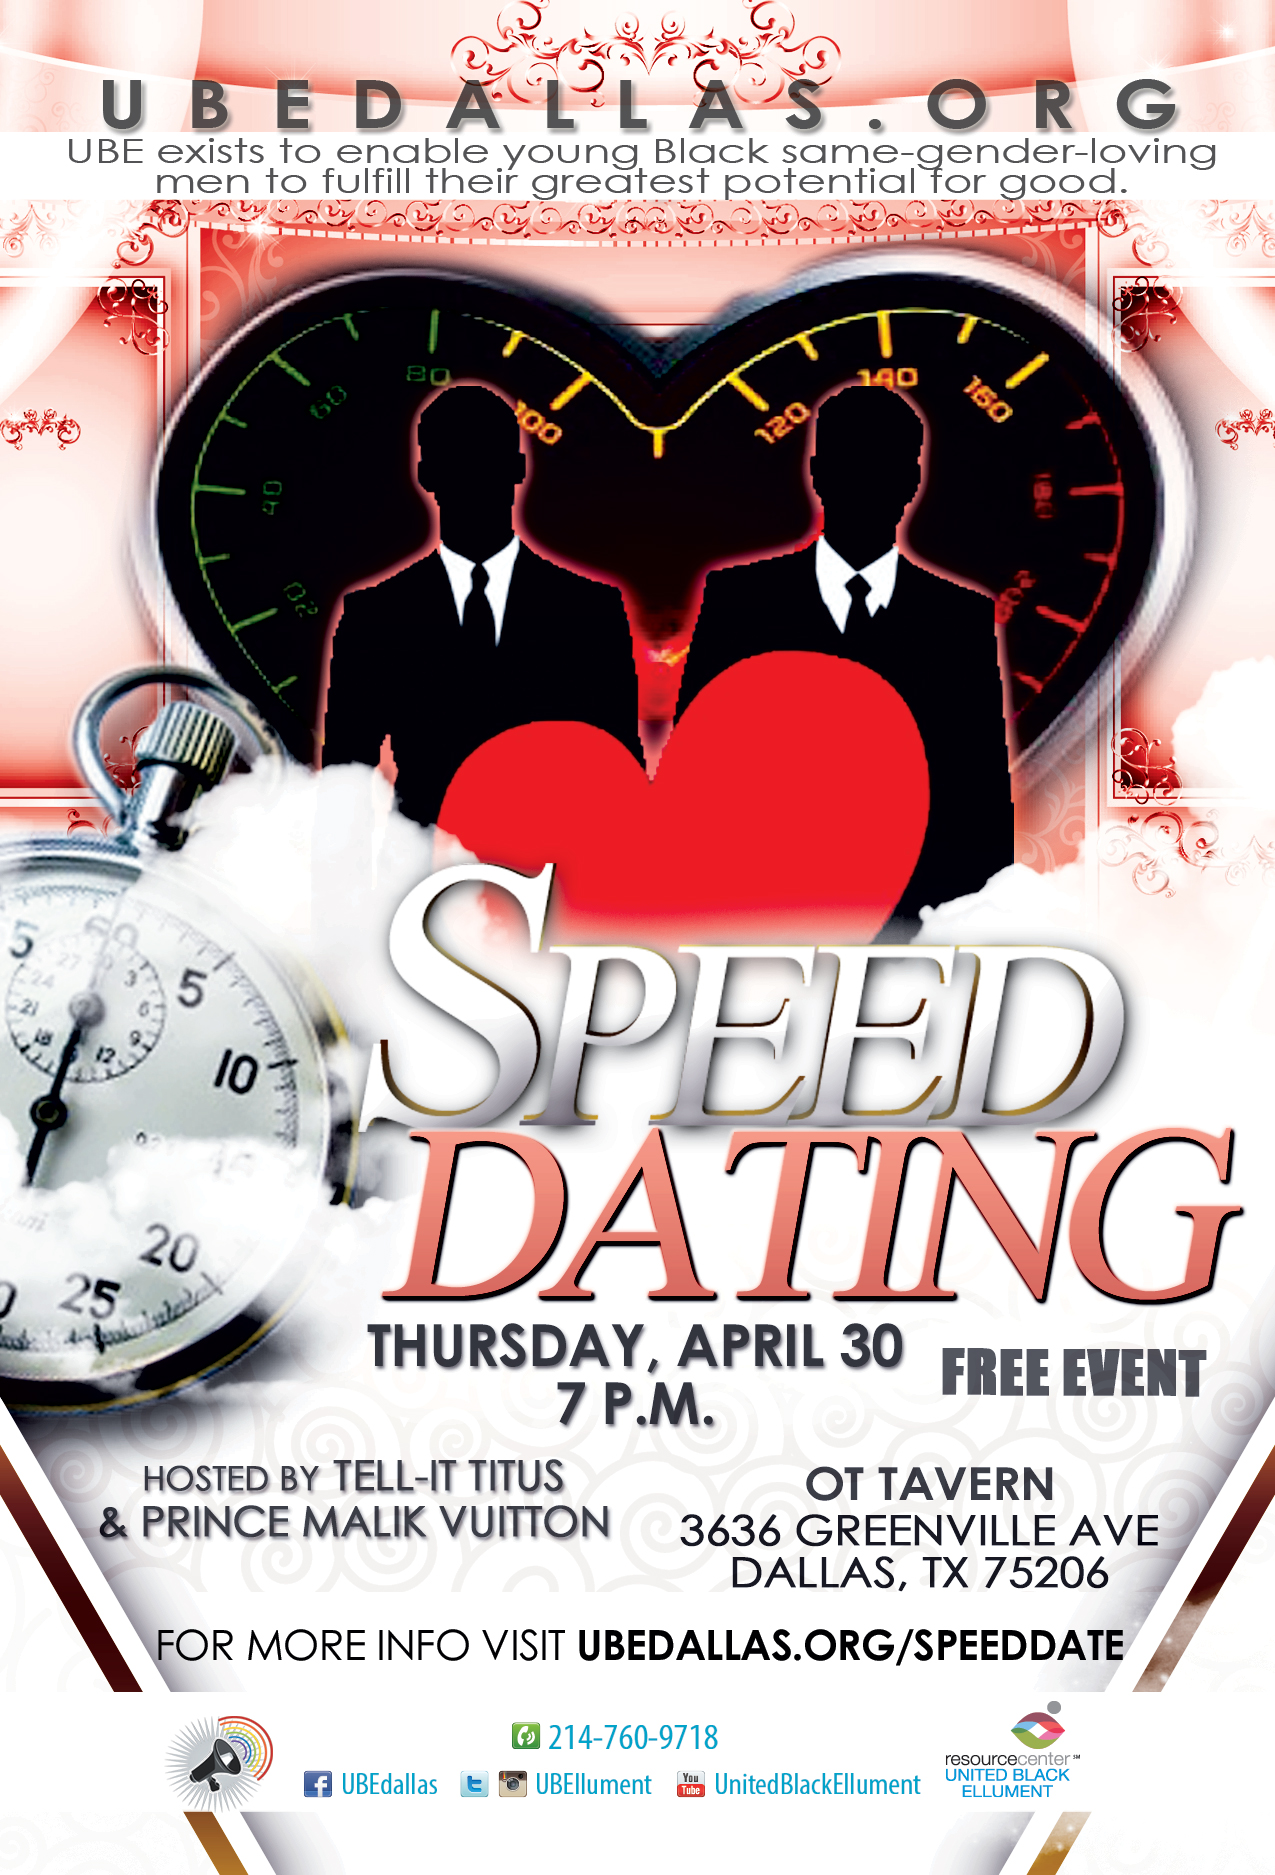 Christian speed dating dallas